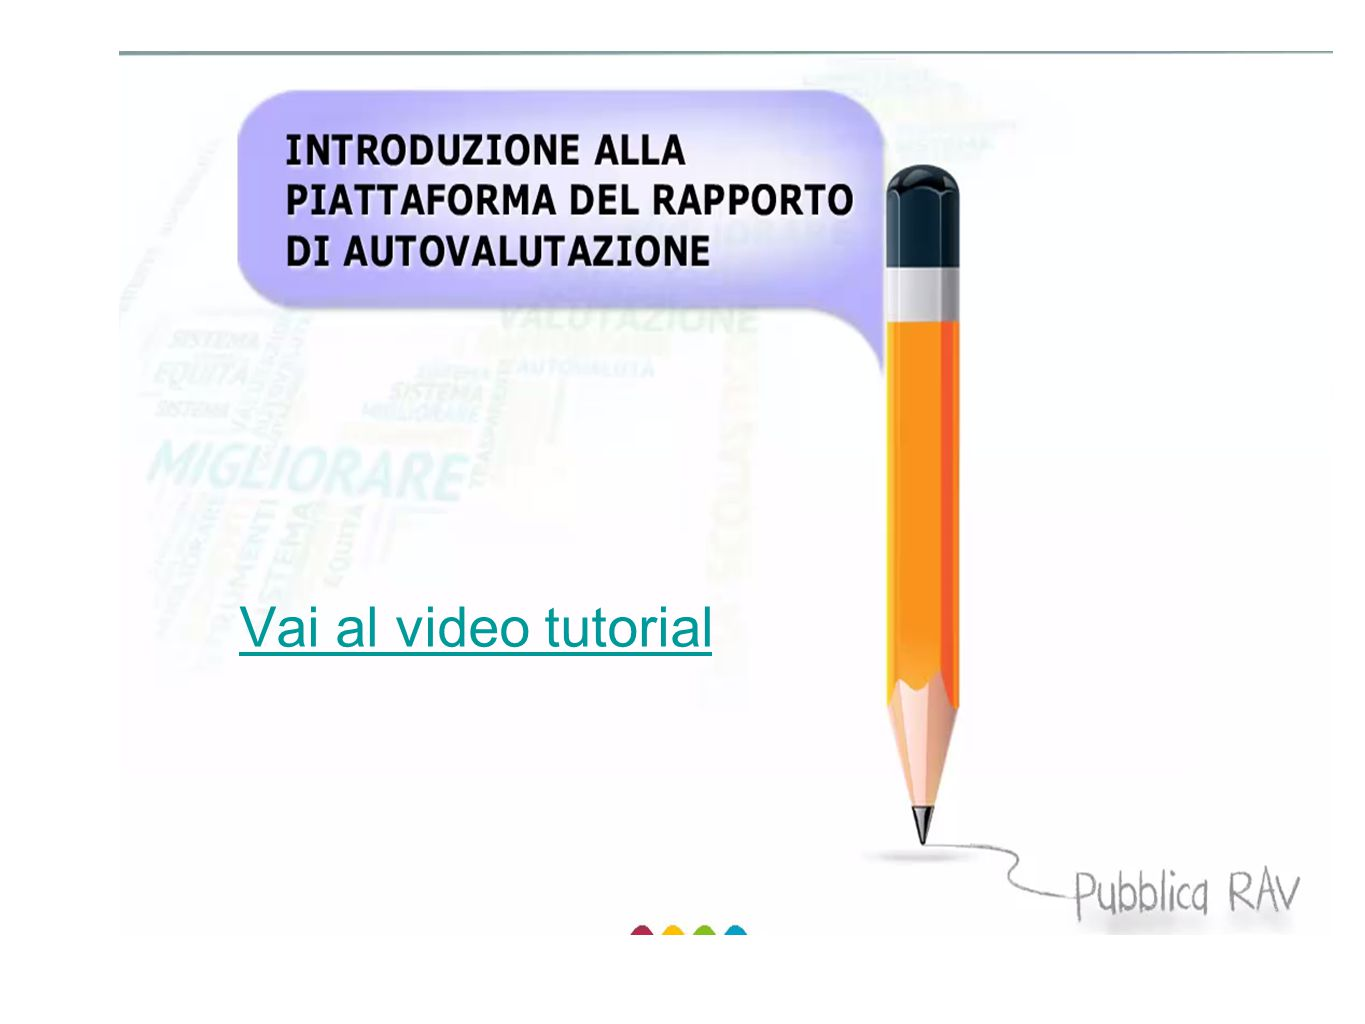 Vai al video tutorial